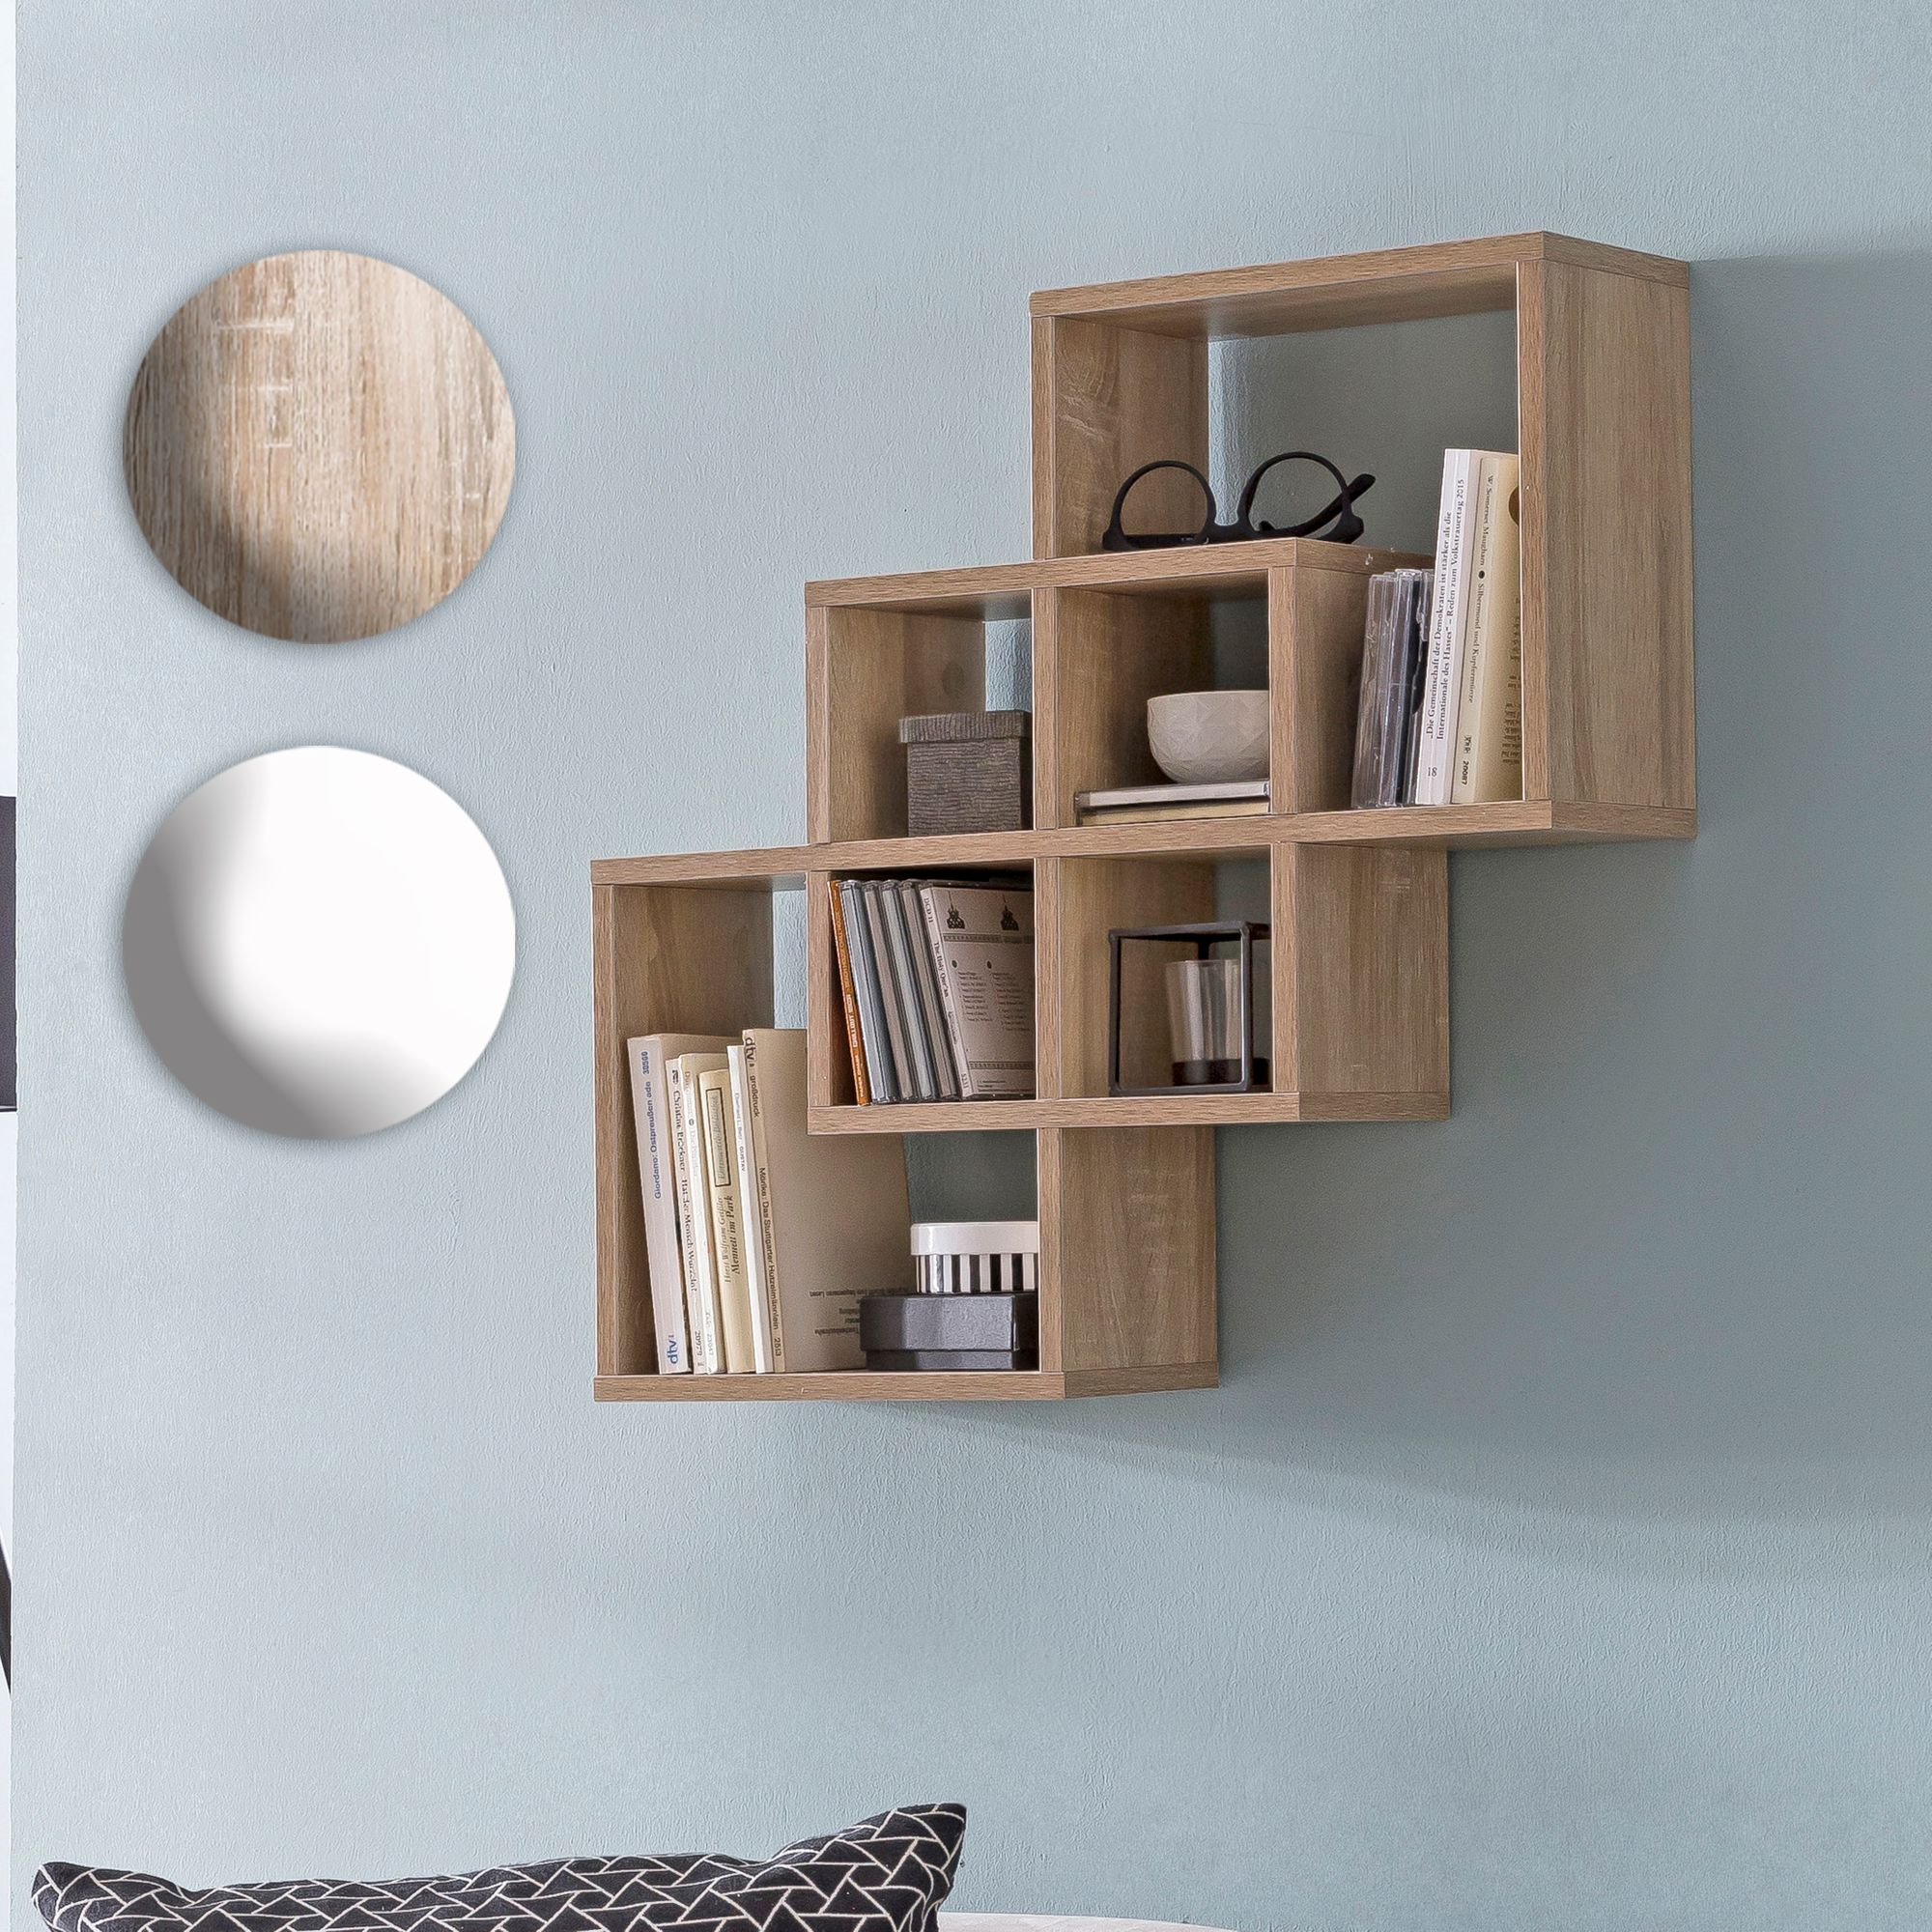 Hängeregal Wandregal Finebuy Wandregal Sv51810 60x60x16 Cm Holz Hängeregal Modern Design Wandboard Freischwebend Holzregal Regal Für Die Wand Bücherregal Schmal